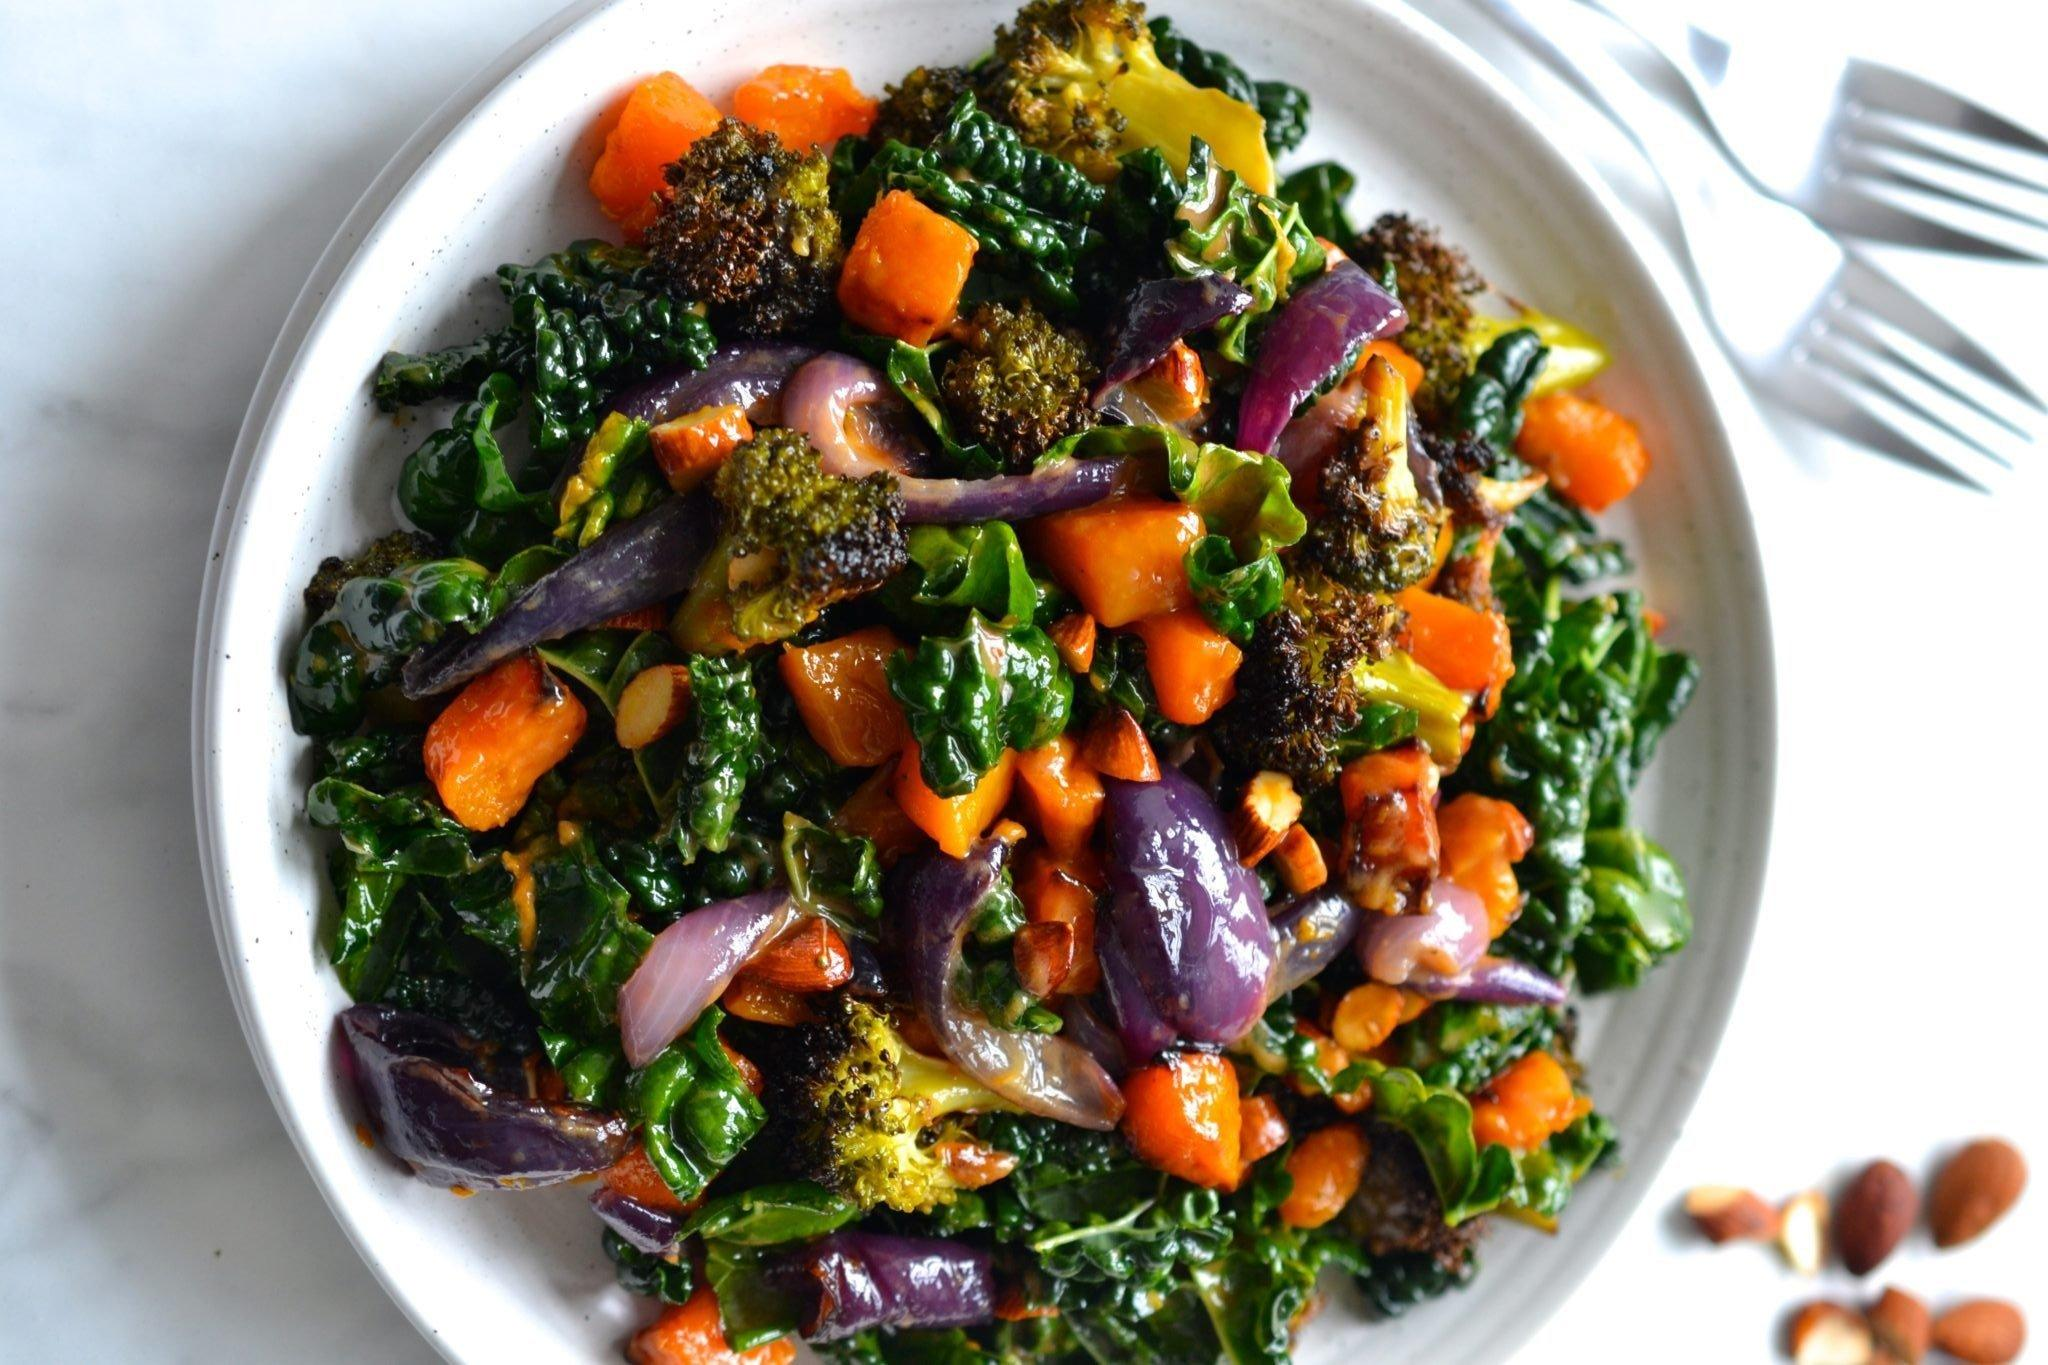 Recipe Box: Pumpkin, Broccoli & Kale Salad with Roasted Garlic Dressing